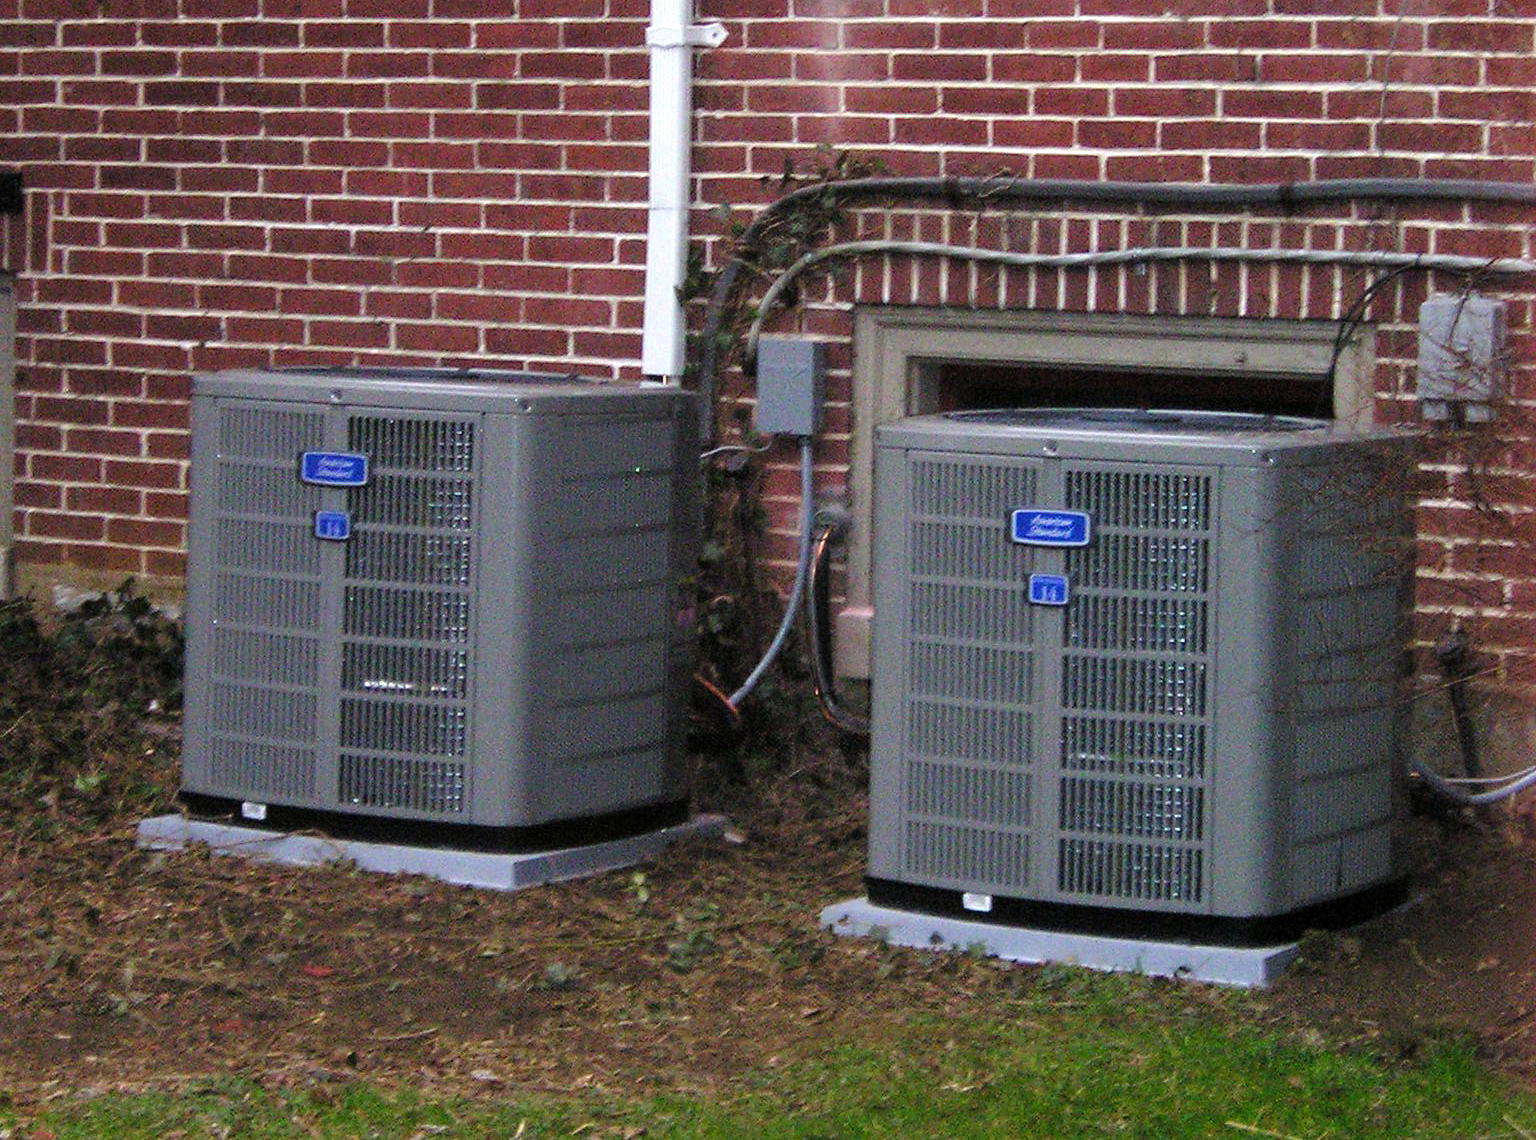 #485F20 GEN3 Electric (215) 352 5963: Wire New Central Air Unit Best 1773 Central Air Ac Unit photos with 1536x1140 px on helpvideos.info - Air Conditioners, Air Coolers and more